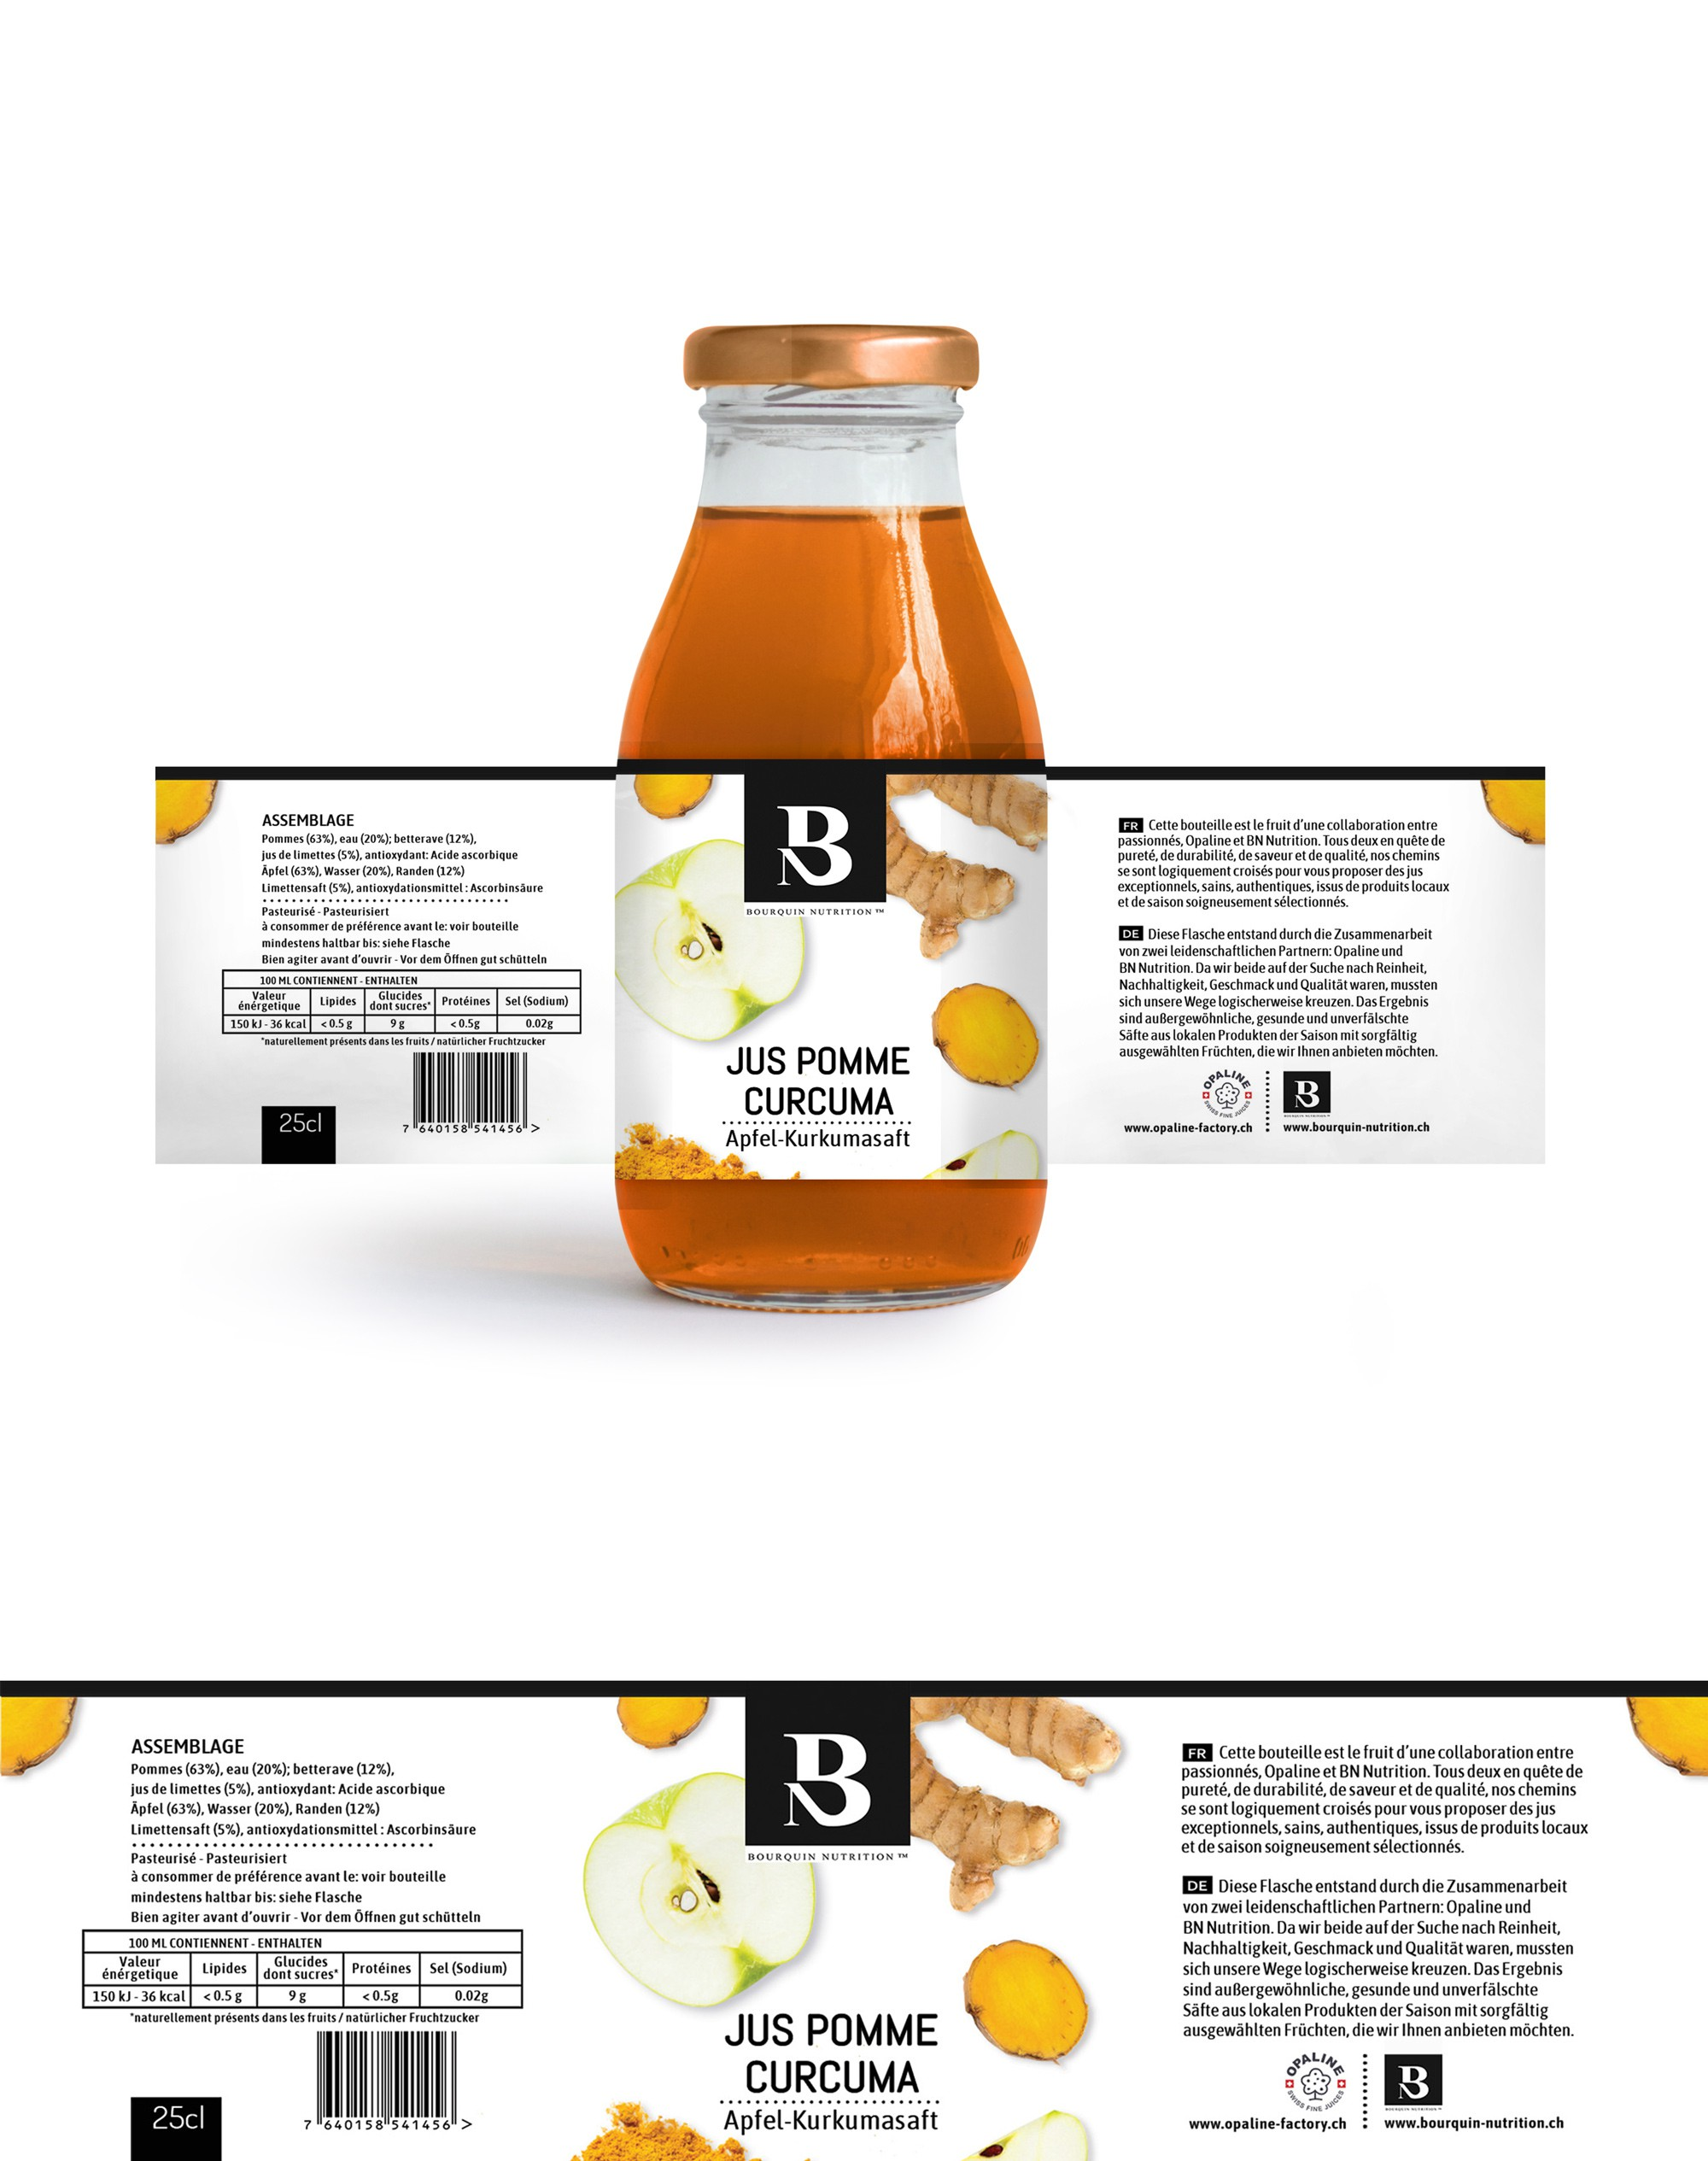 The amazing label for our juices - part 2 and 3